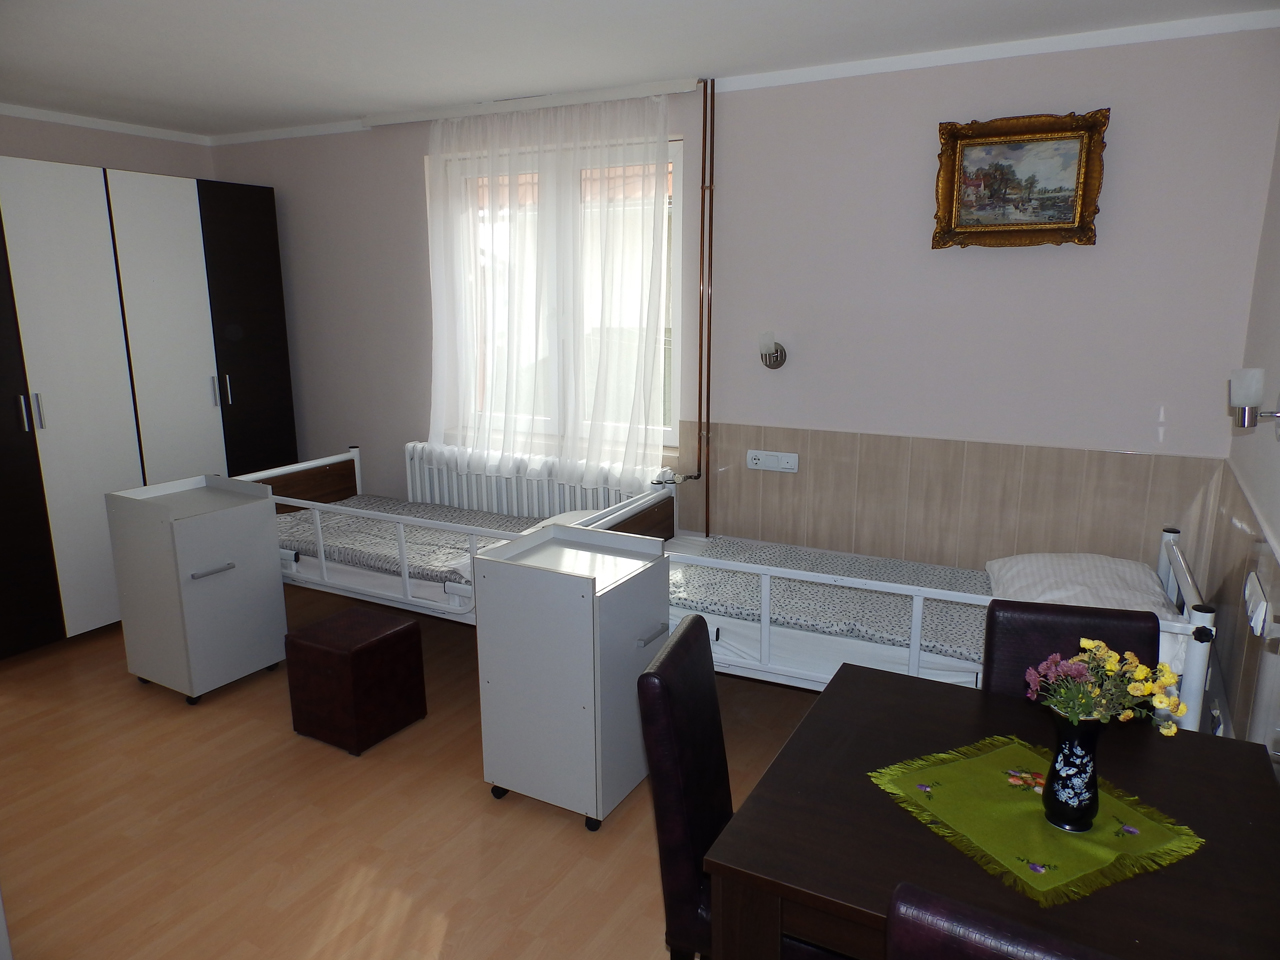 HOME FOR OLD NADA - BORCA Homes and care for the elderly Beograd